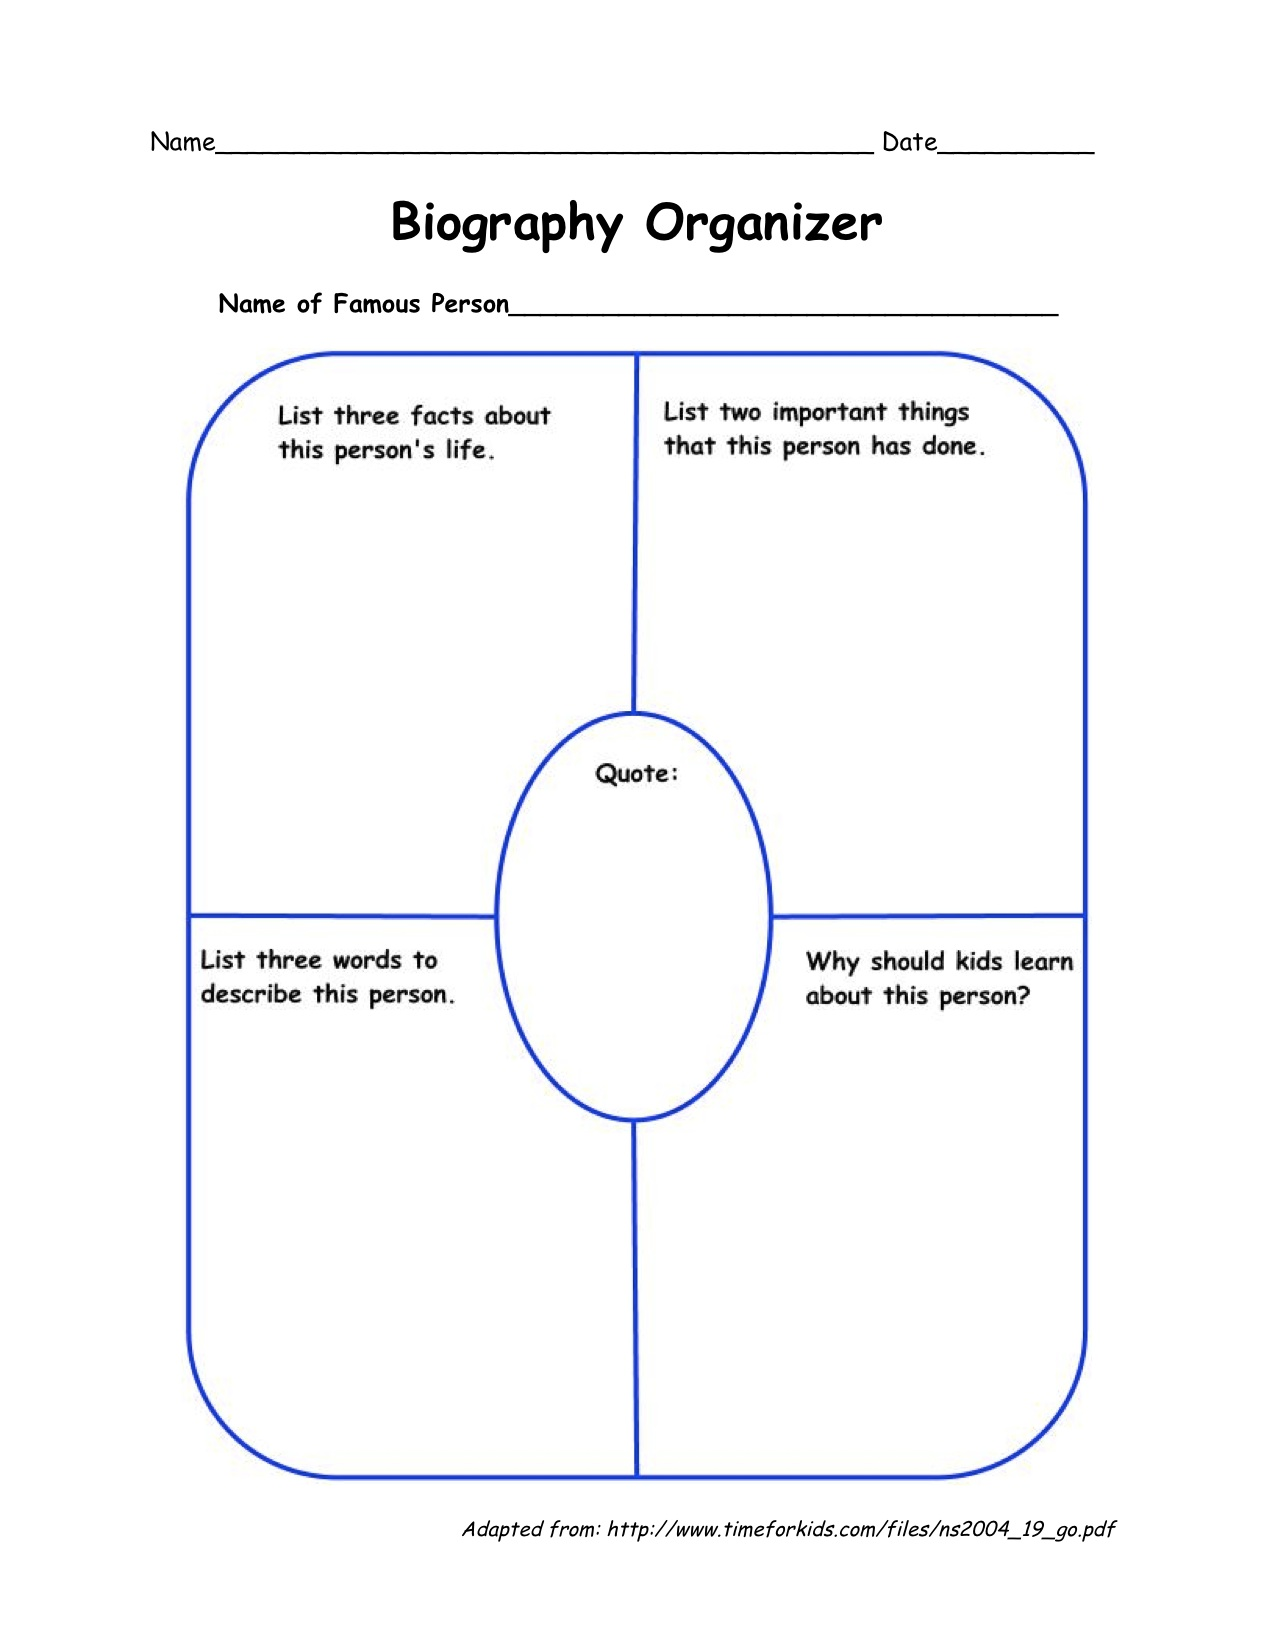 Graphic organizers for biography book reports